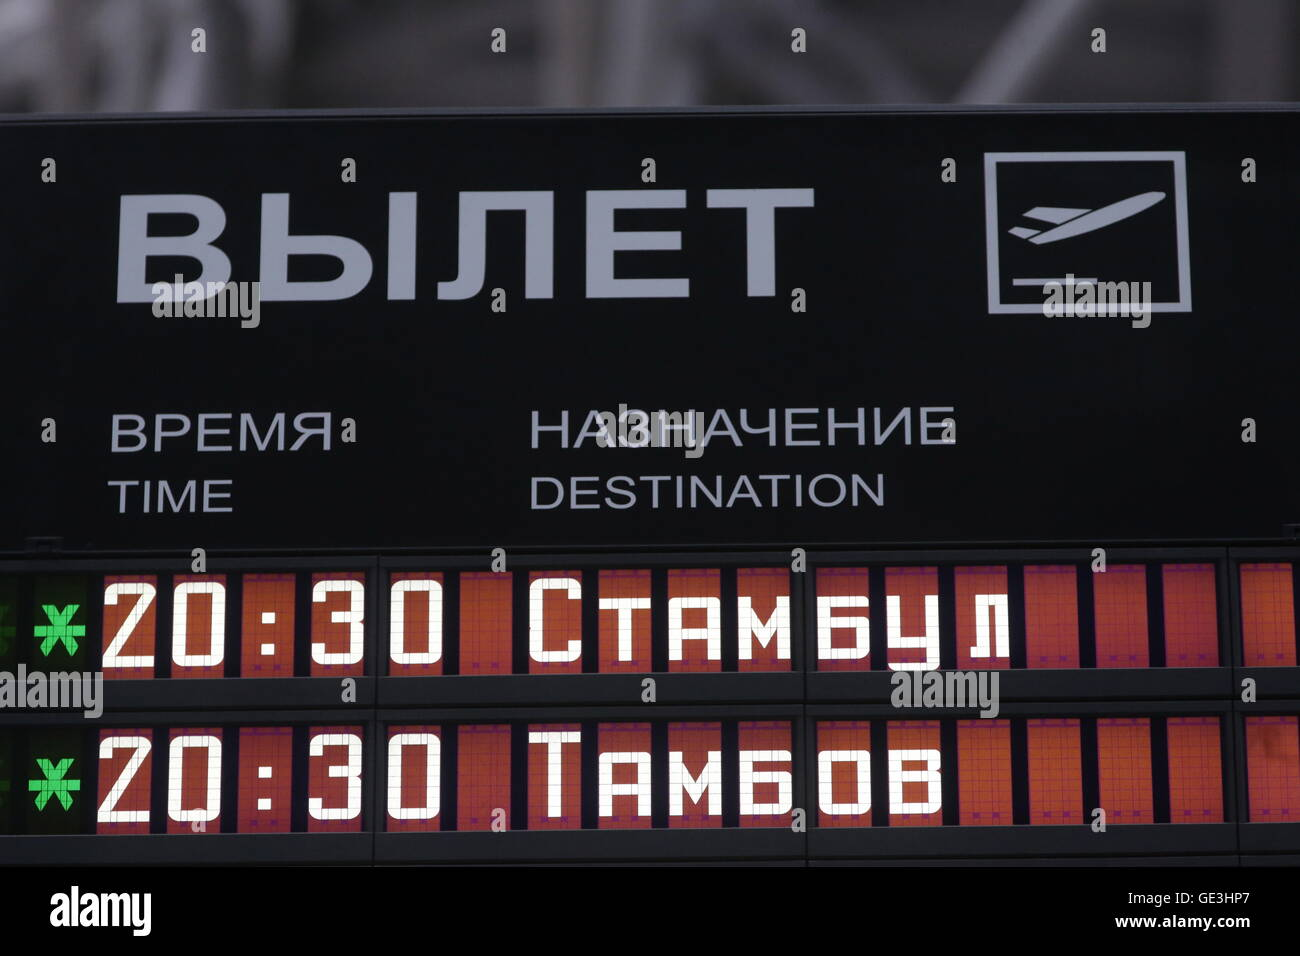 Alphabet Board Airport Stockfotos & Alphabet Board Airport Bilder ...